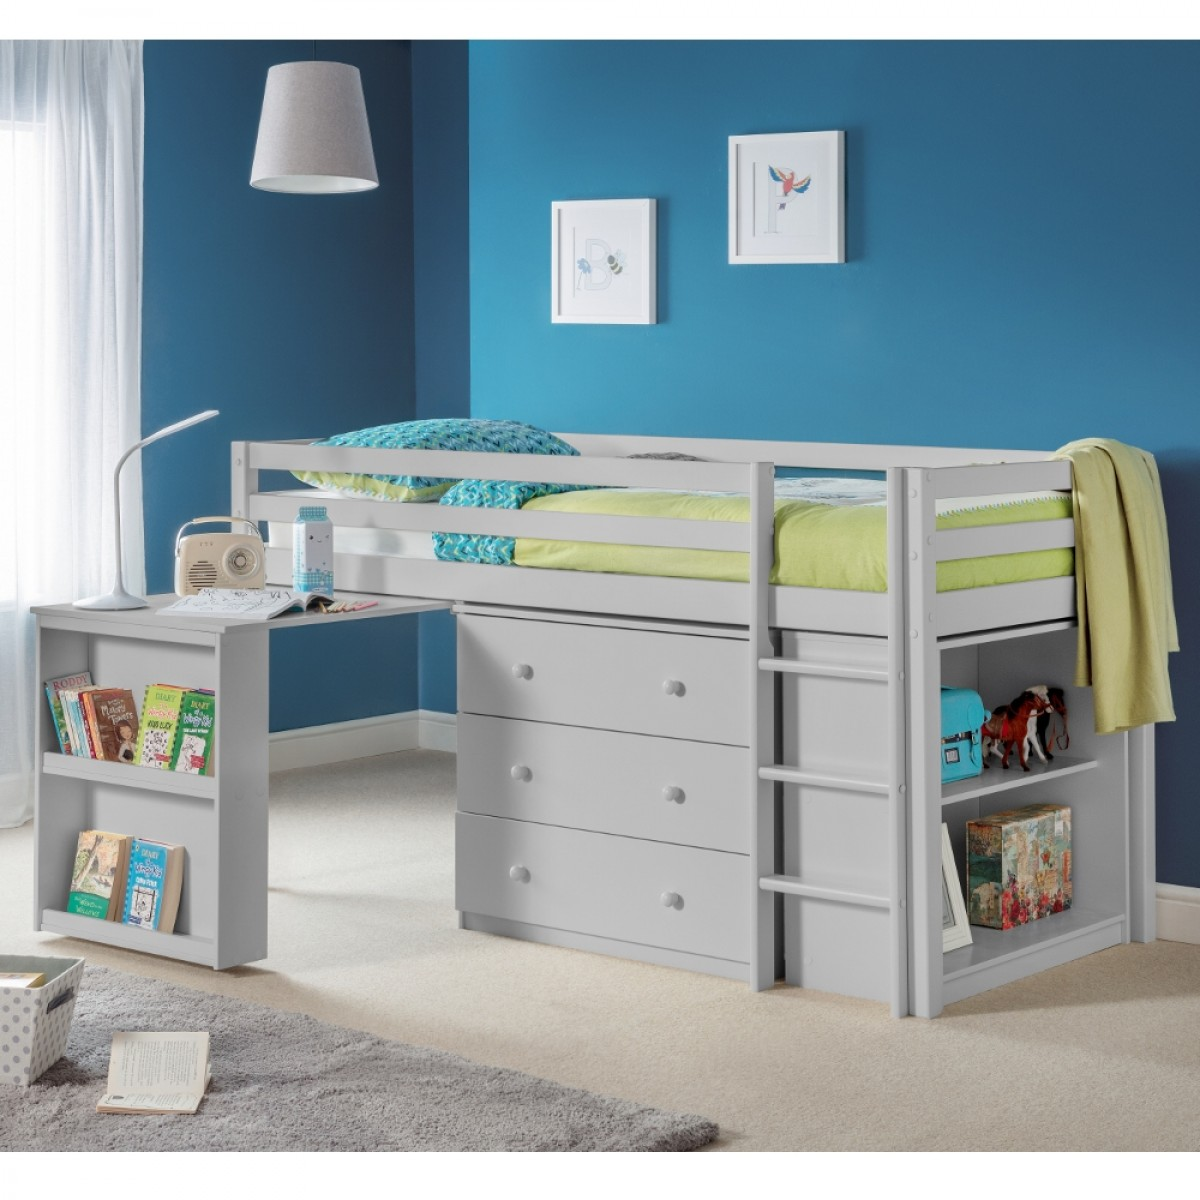 Roxy Dove Grey Wooden Mid Sleeper